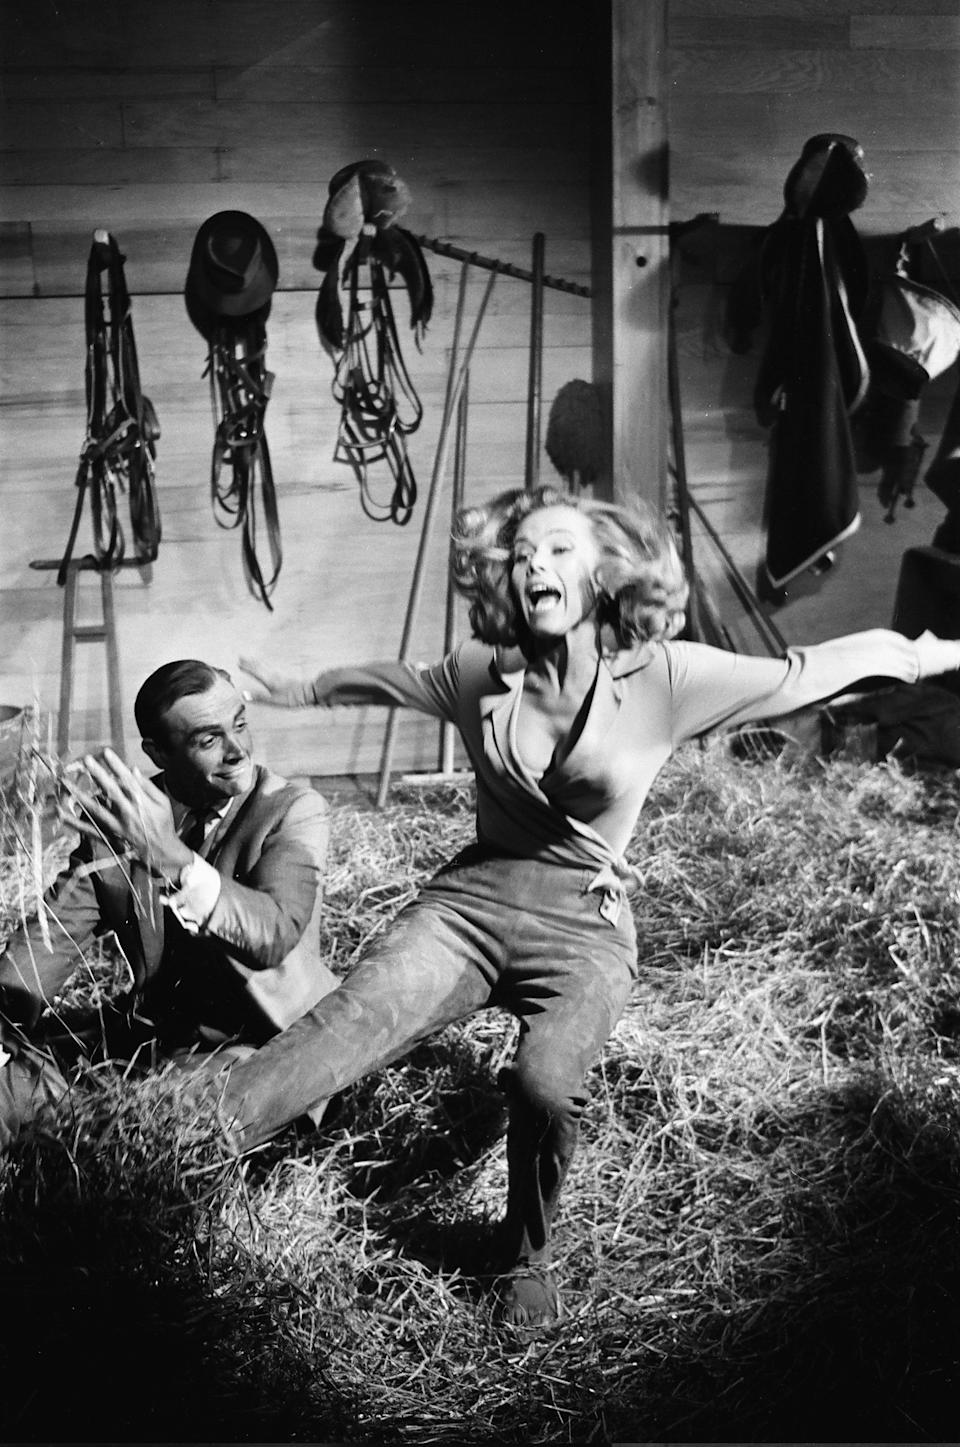 Honor Blackman as Pussy Galore and Sean Connery as James Bond seen here filming a fight scene which develops into a love scene in Goldfingers barn on the Pinewood studios back lot, 2nd June 1964. (Photo by Victor Crawshaw/Mirrorpix/Getty Images)